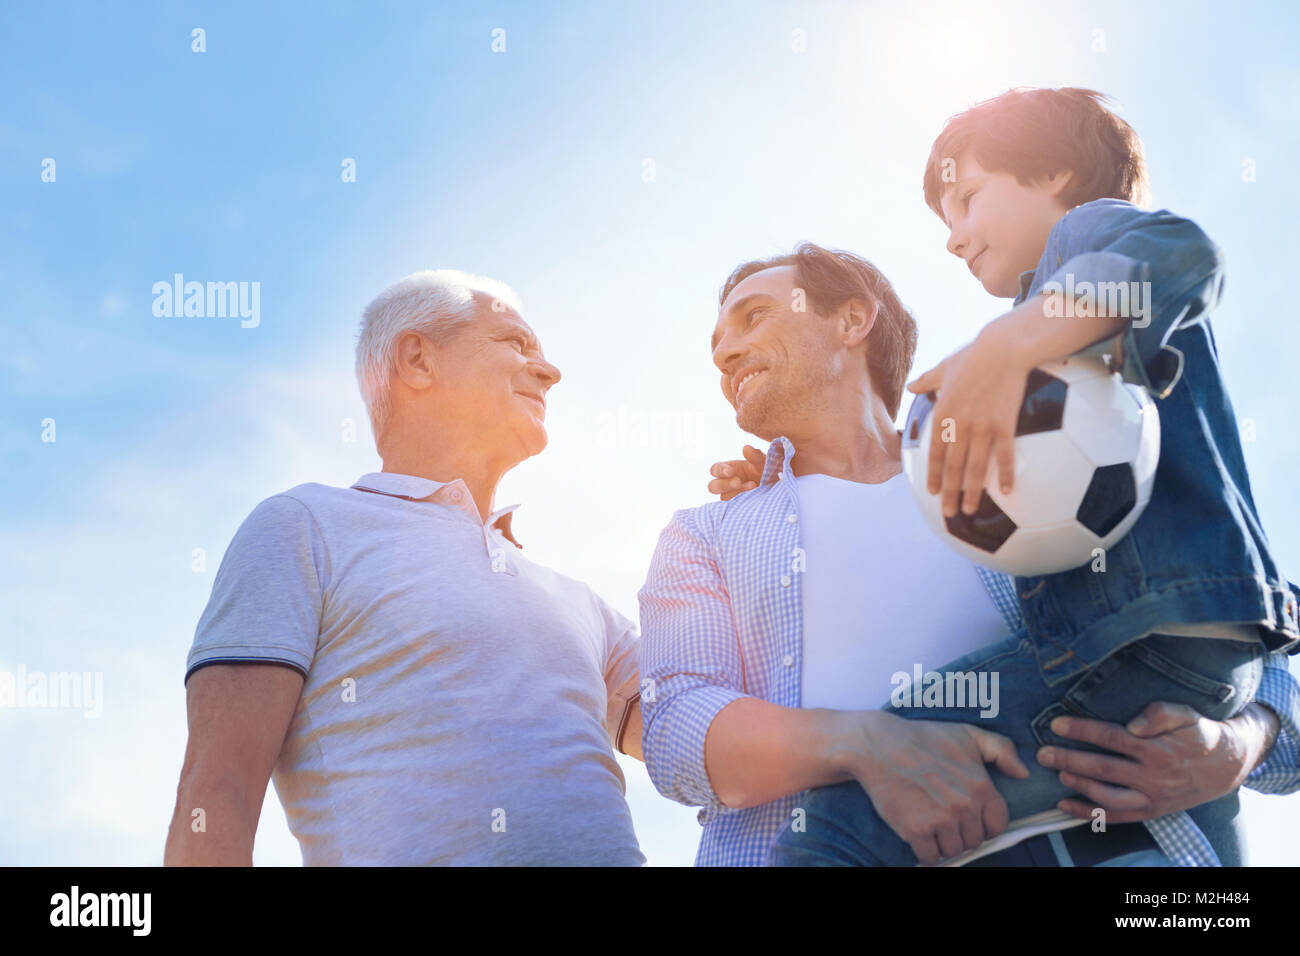 Three generations of men spending time outdoors - Stock Image